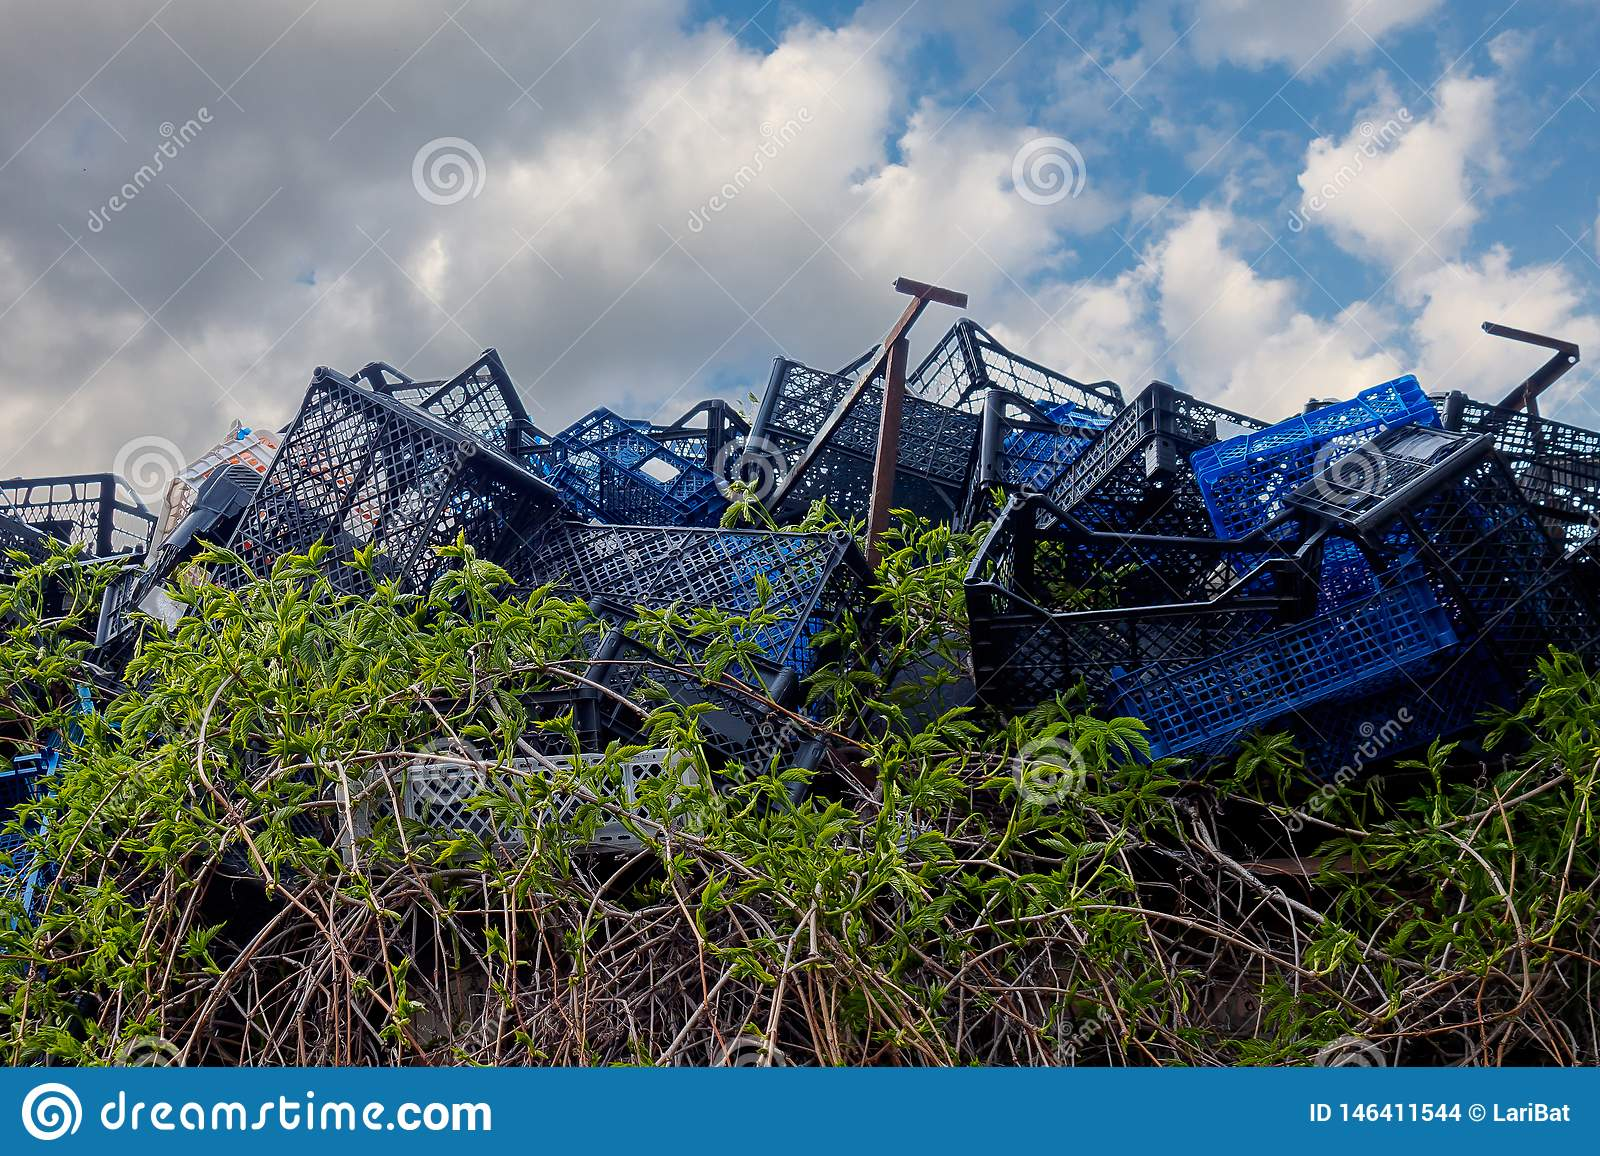 Green vines grow through blue plastic boxes in a landfill against a blue sky with clouds. The concept of hope